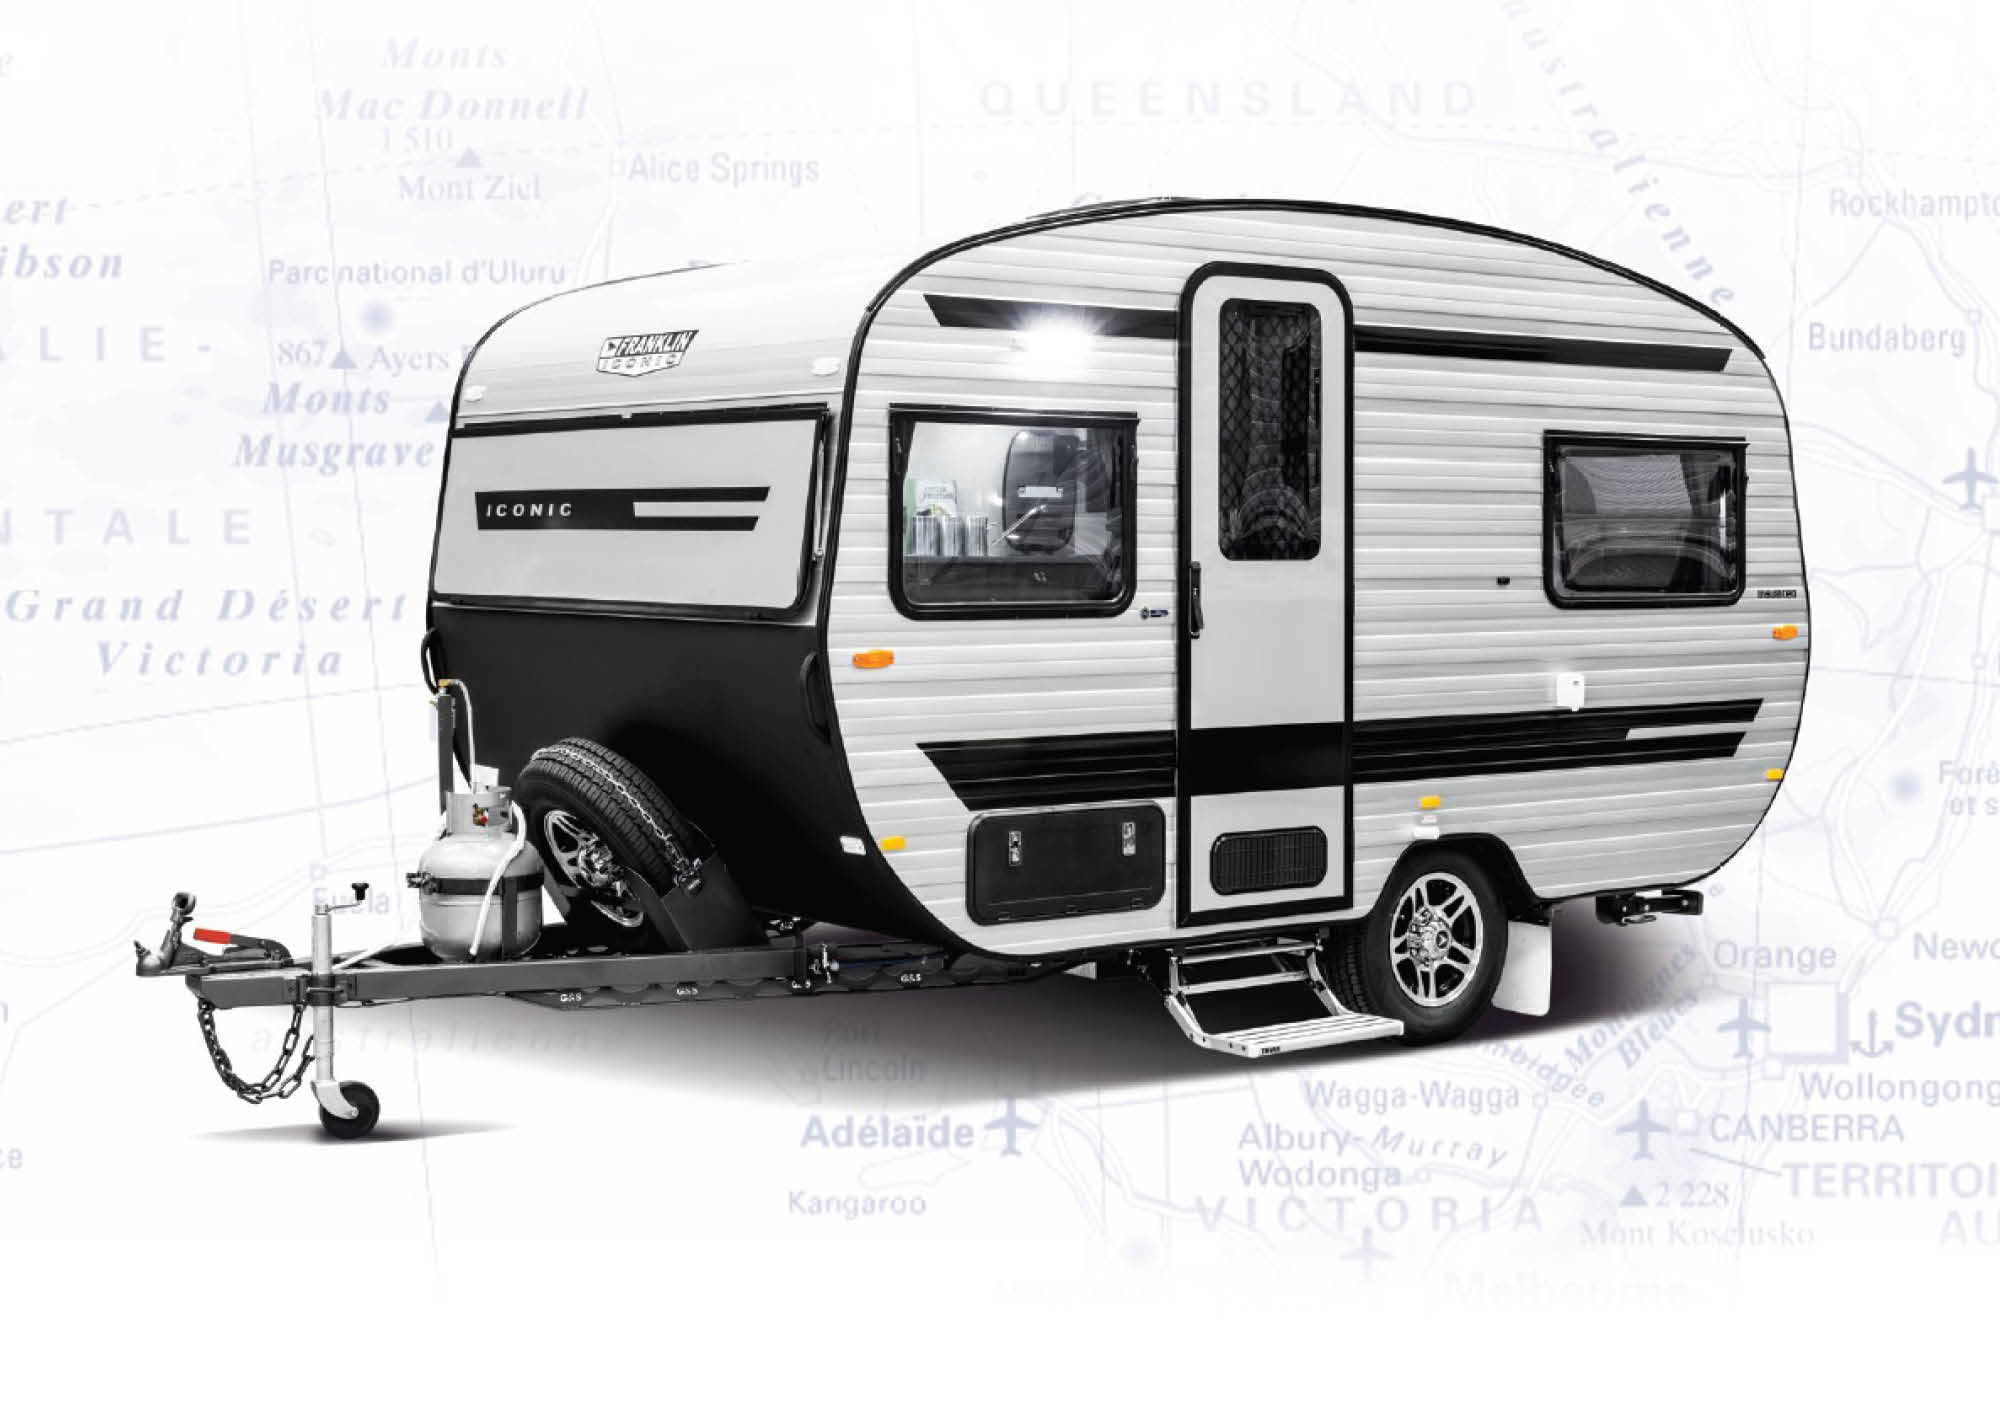 Franklin Caravans' Iconic Blast From the Past